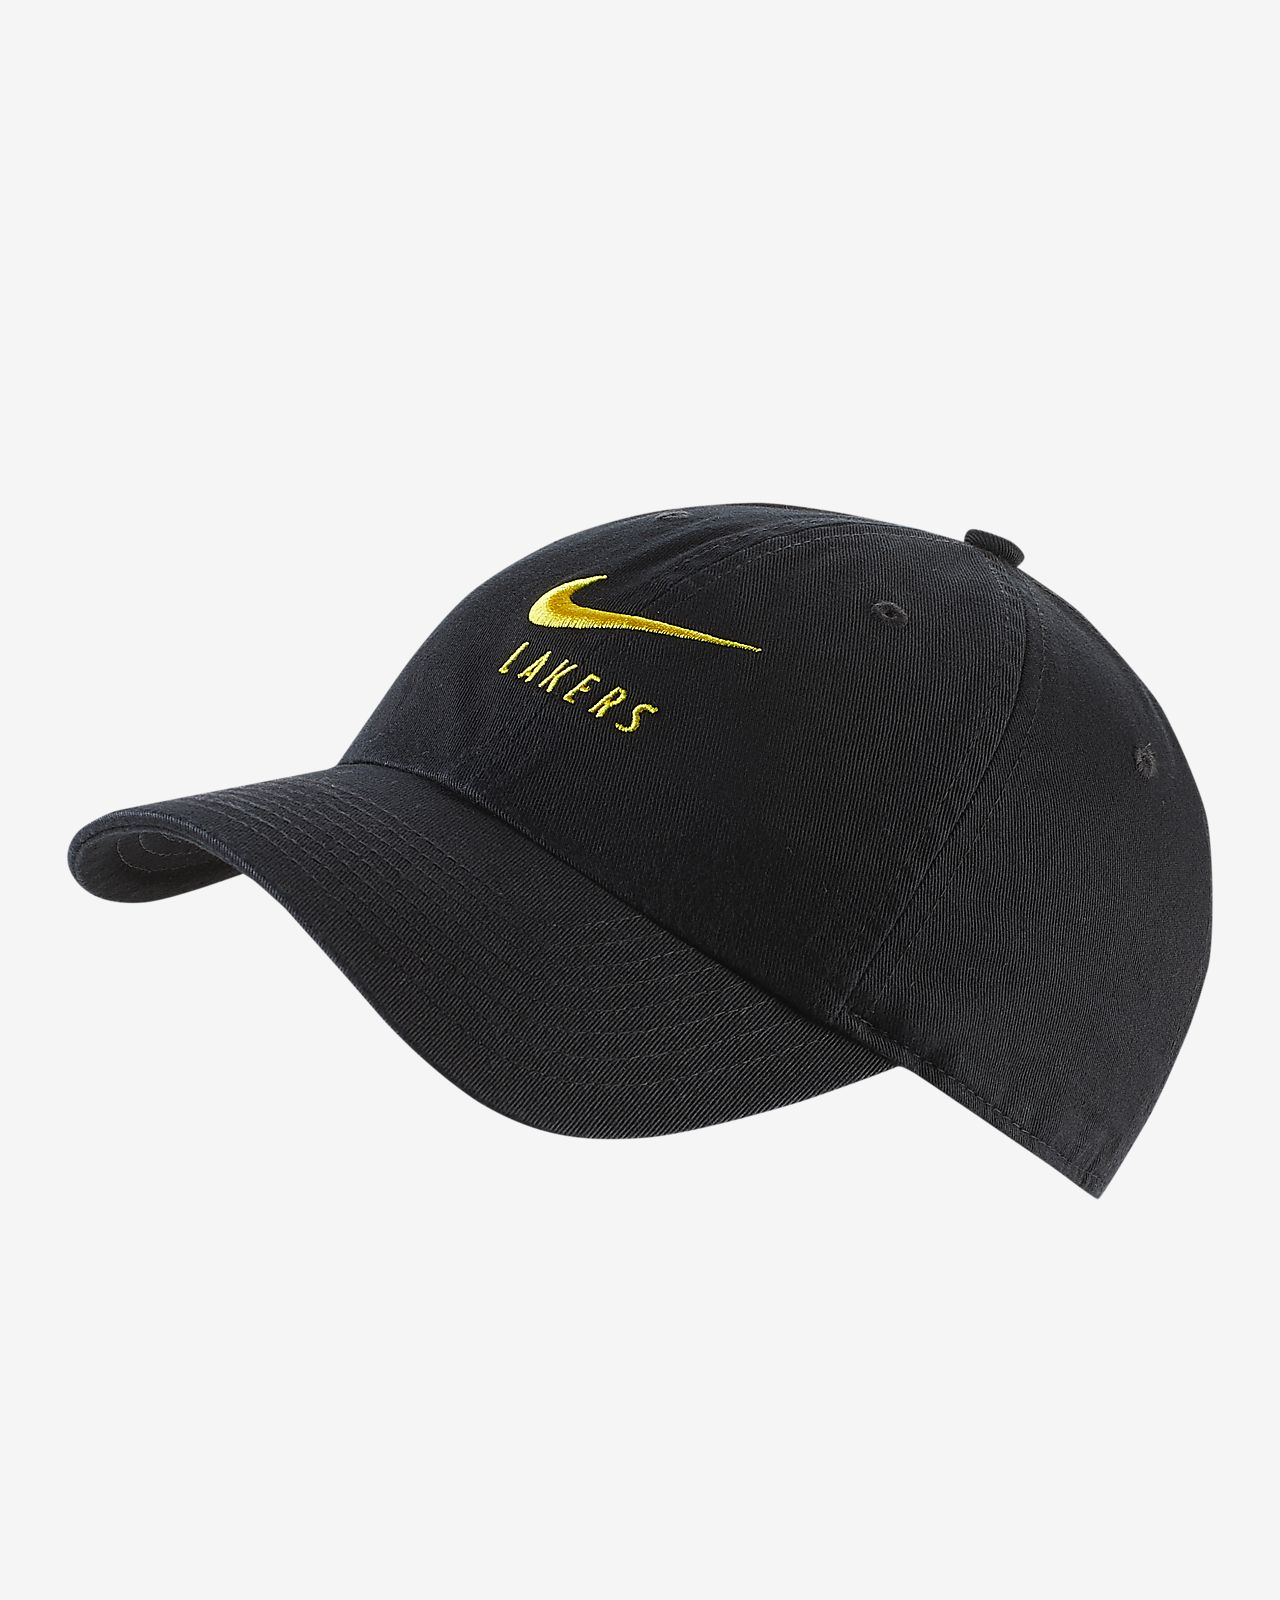 Los Angeles Lakers Nike Heritage 86 NBA Cap